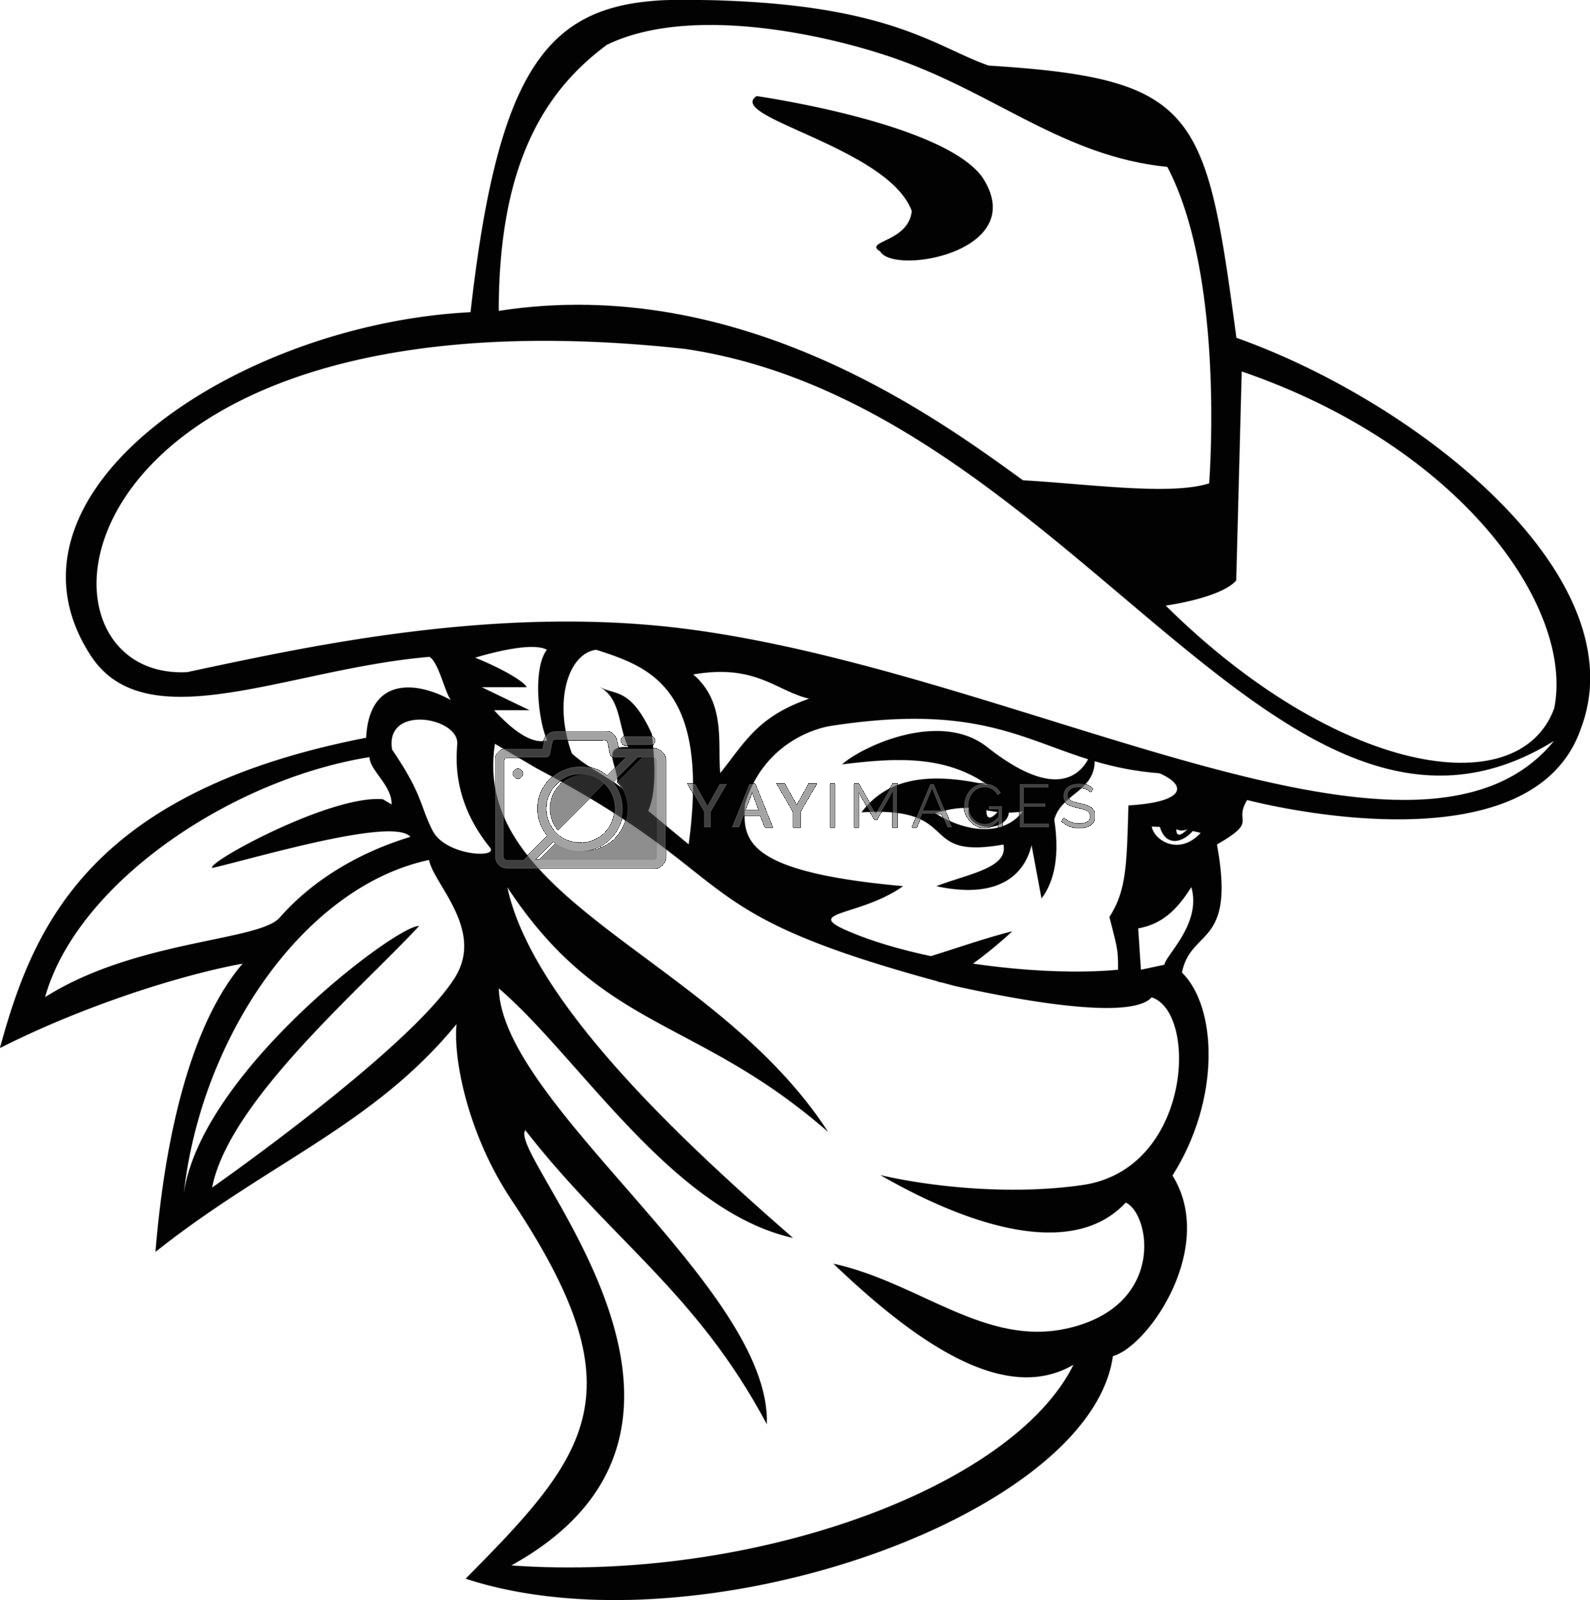 Mascot illustration of a cowboy bandit, outlaw, highwayman, maverick or robber wearing a face mask, face covering or bandana viewed from side on isolated background in retro black and white style.